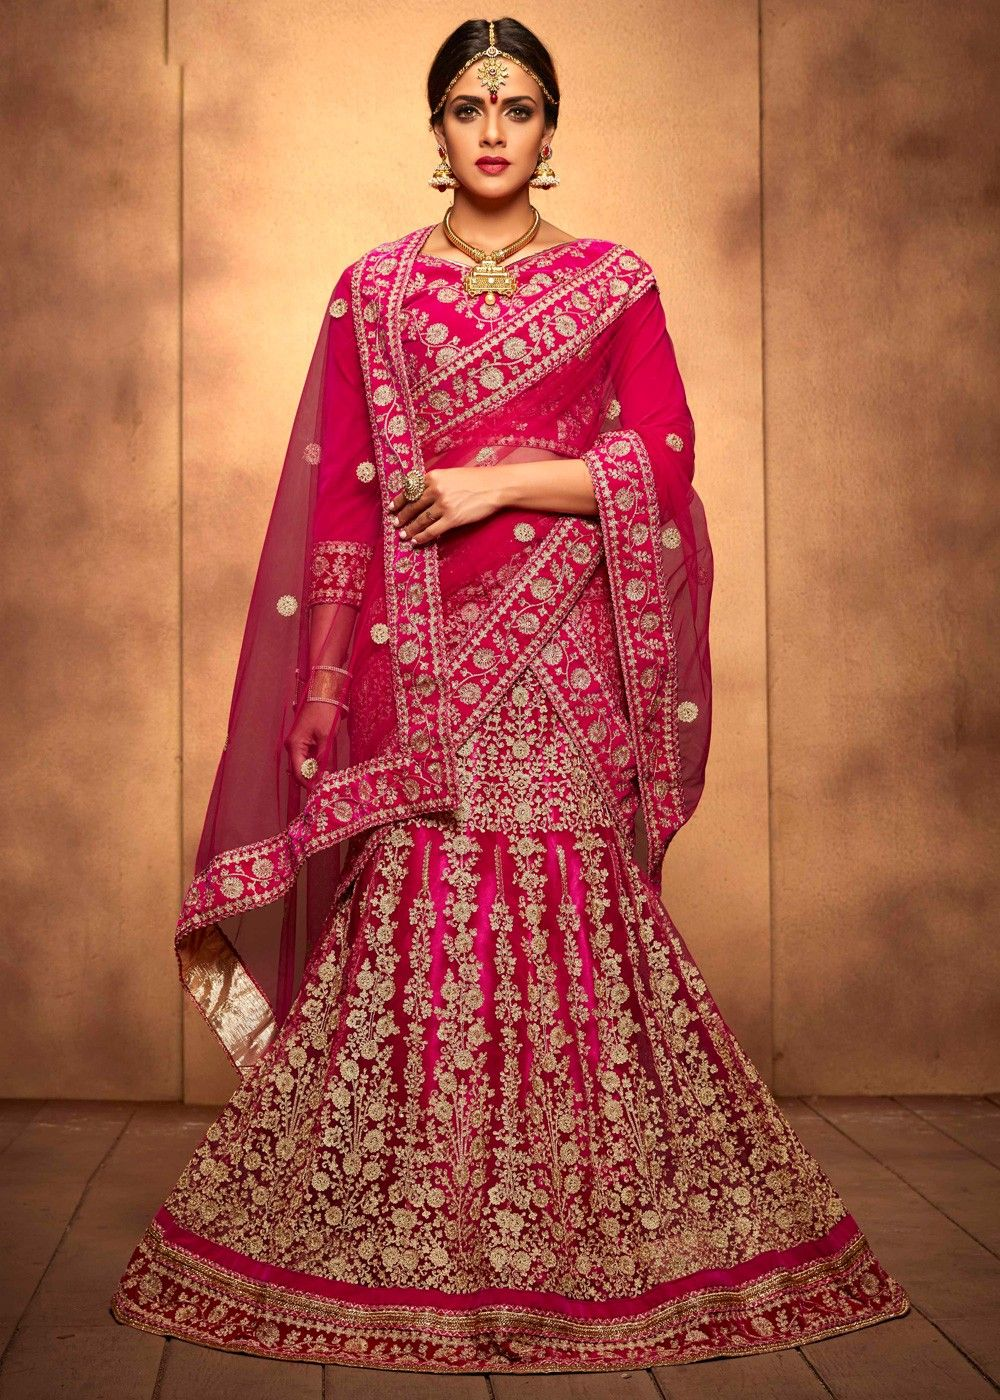 cbc6964511 #Pink #net #lehenga designed with stone, zari, #resham embroidery, #lace  and #patch border work.